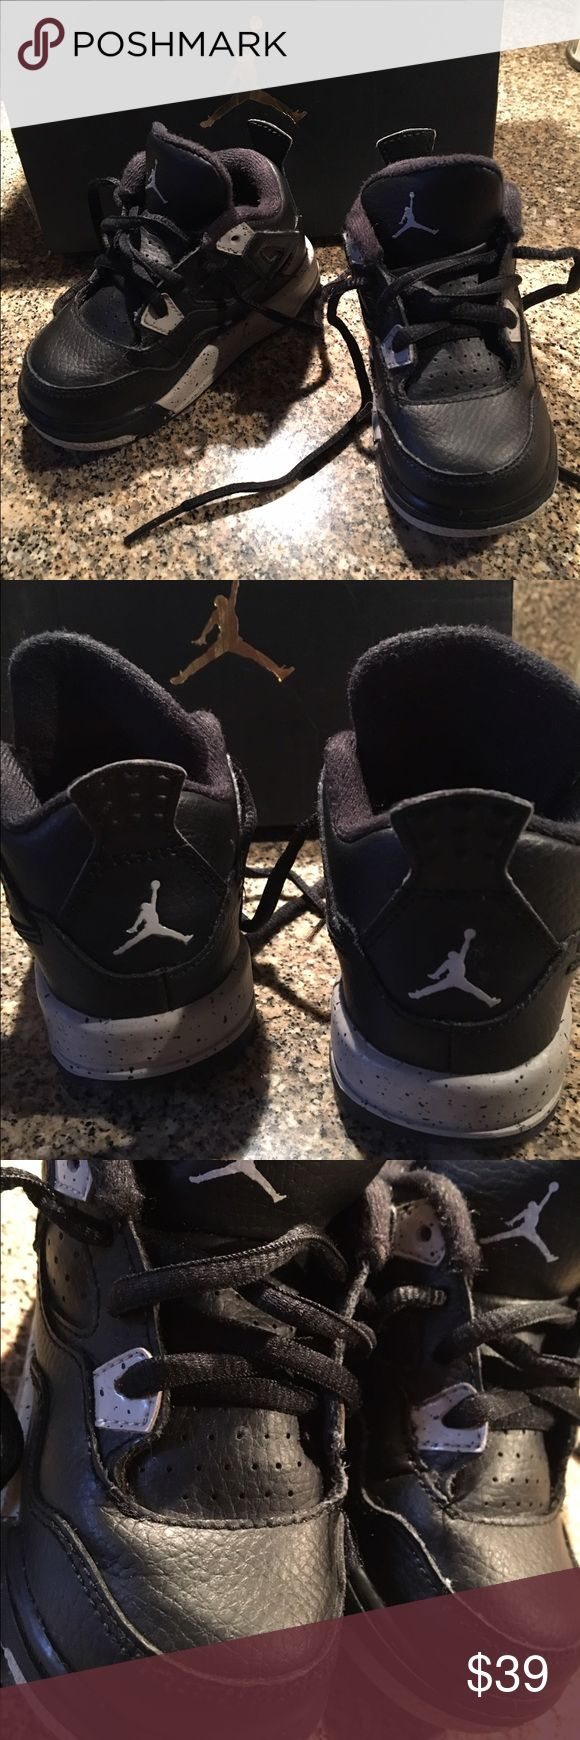 Jordan 4 Oreos Toddler Clean  No box Unisex Great condition Nike Shoes Sneakers